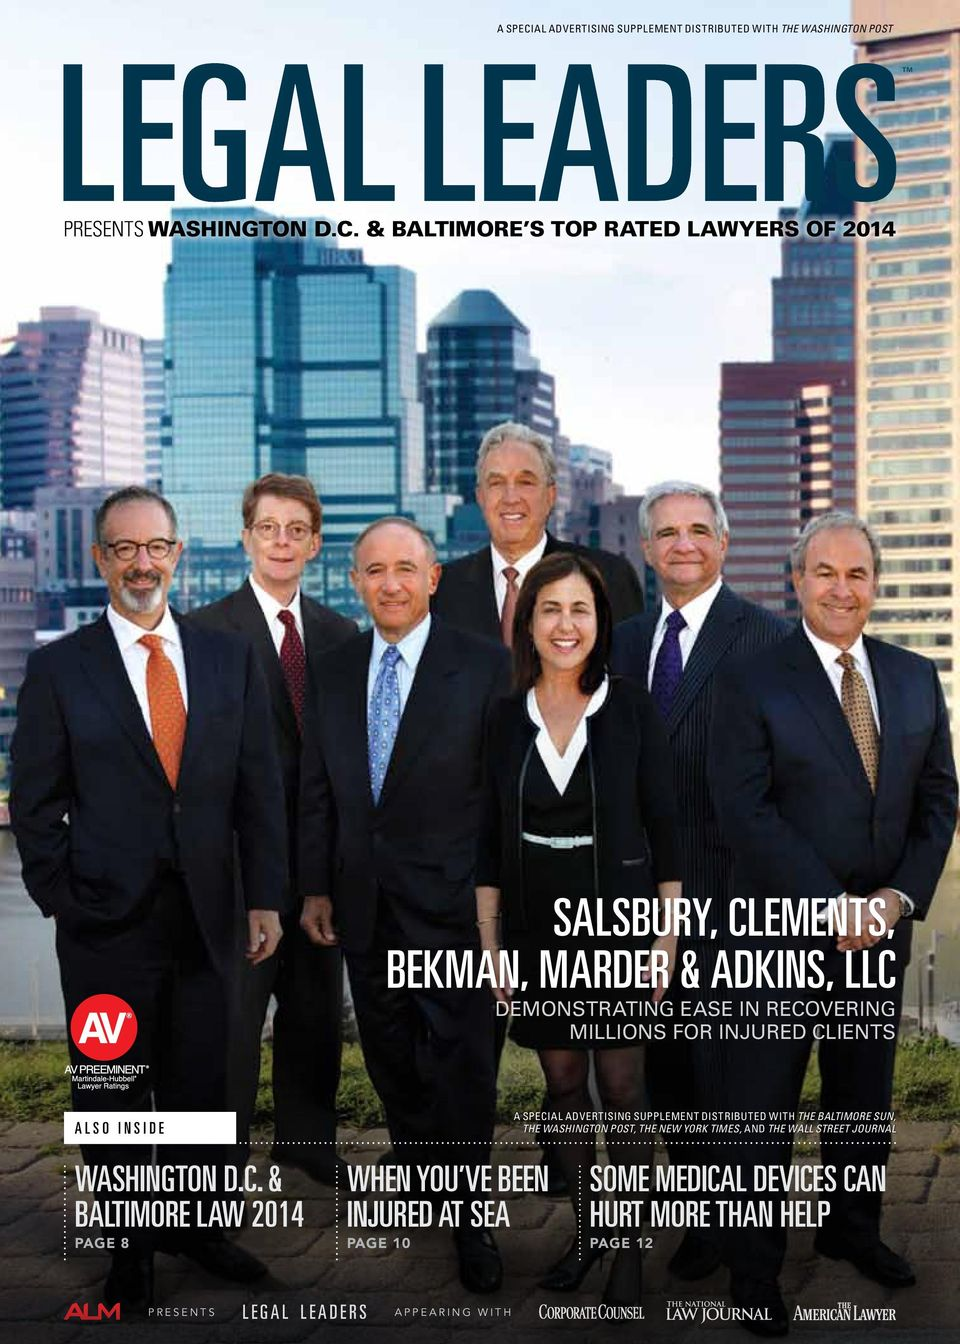 & baltimore s top rated lawyers of 2014 Salsbury, Clements, Bekman, Marder & Adkins, LLC demonstrating ease in recovering millions for injured